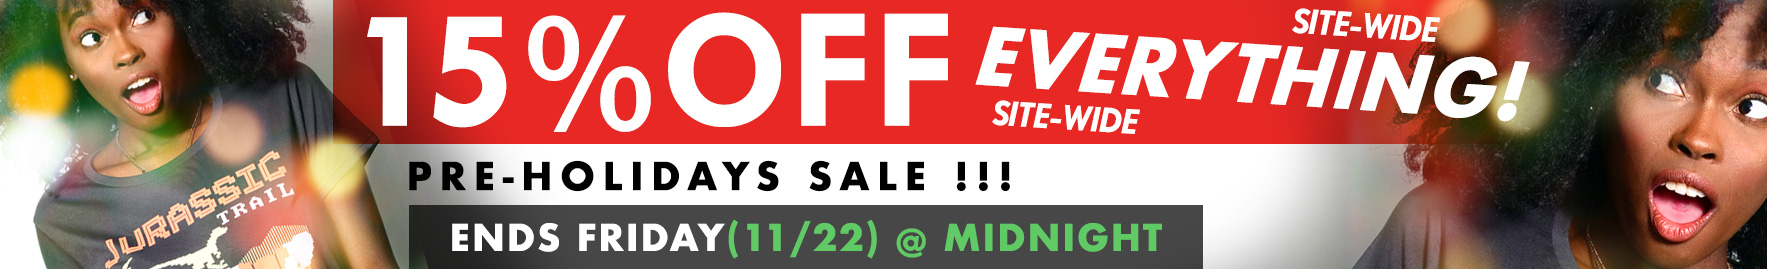 Pre-Holiday Sale - 15% Off Site-Wide - Ends Friday 11/22 at Midnight